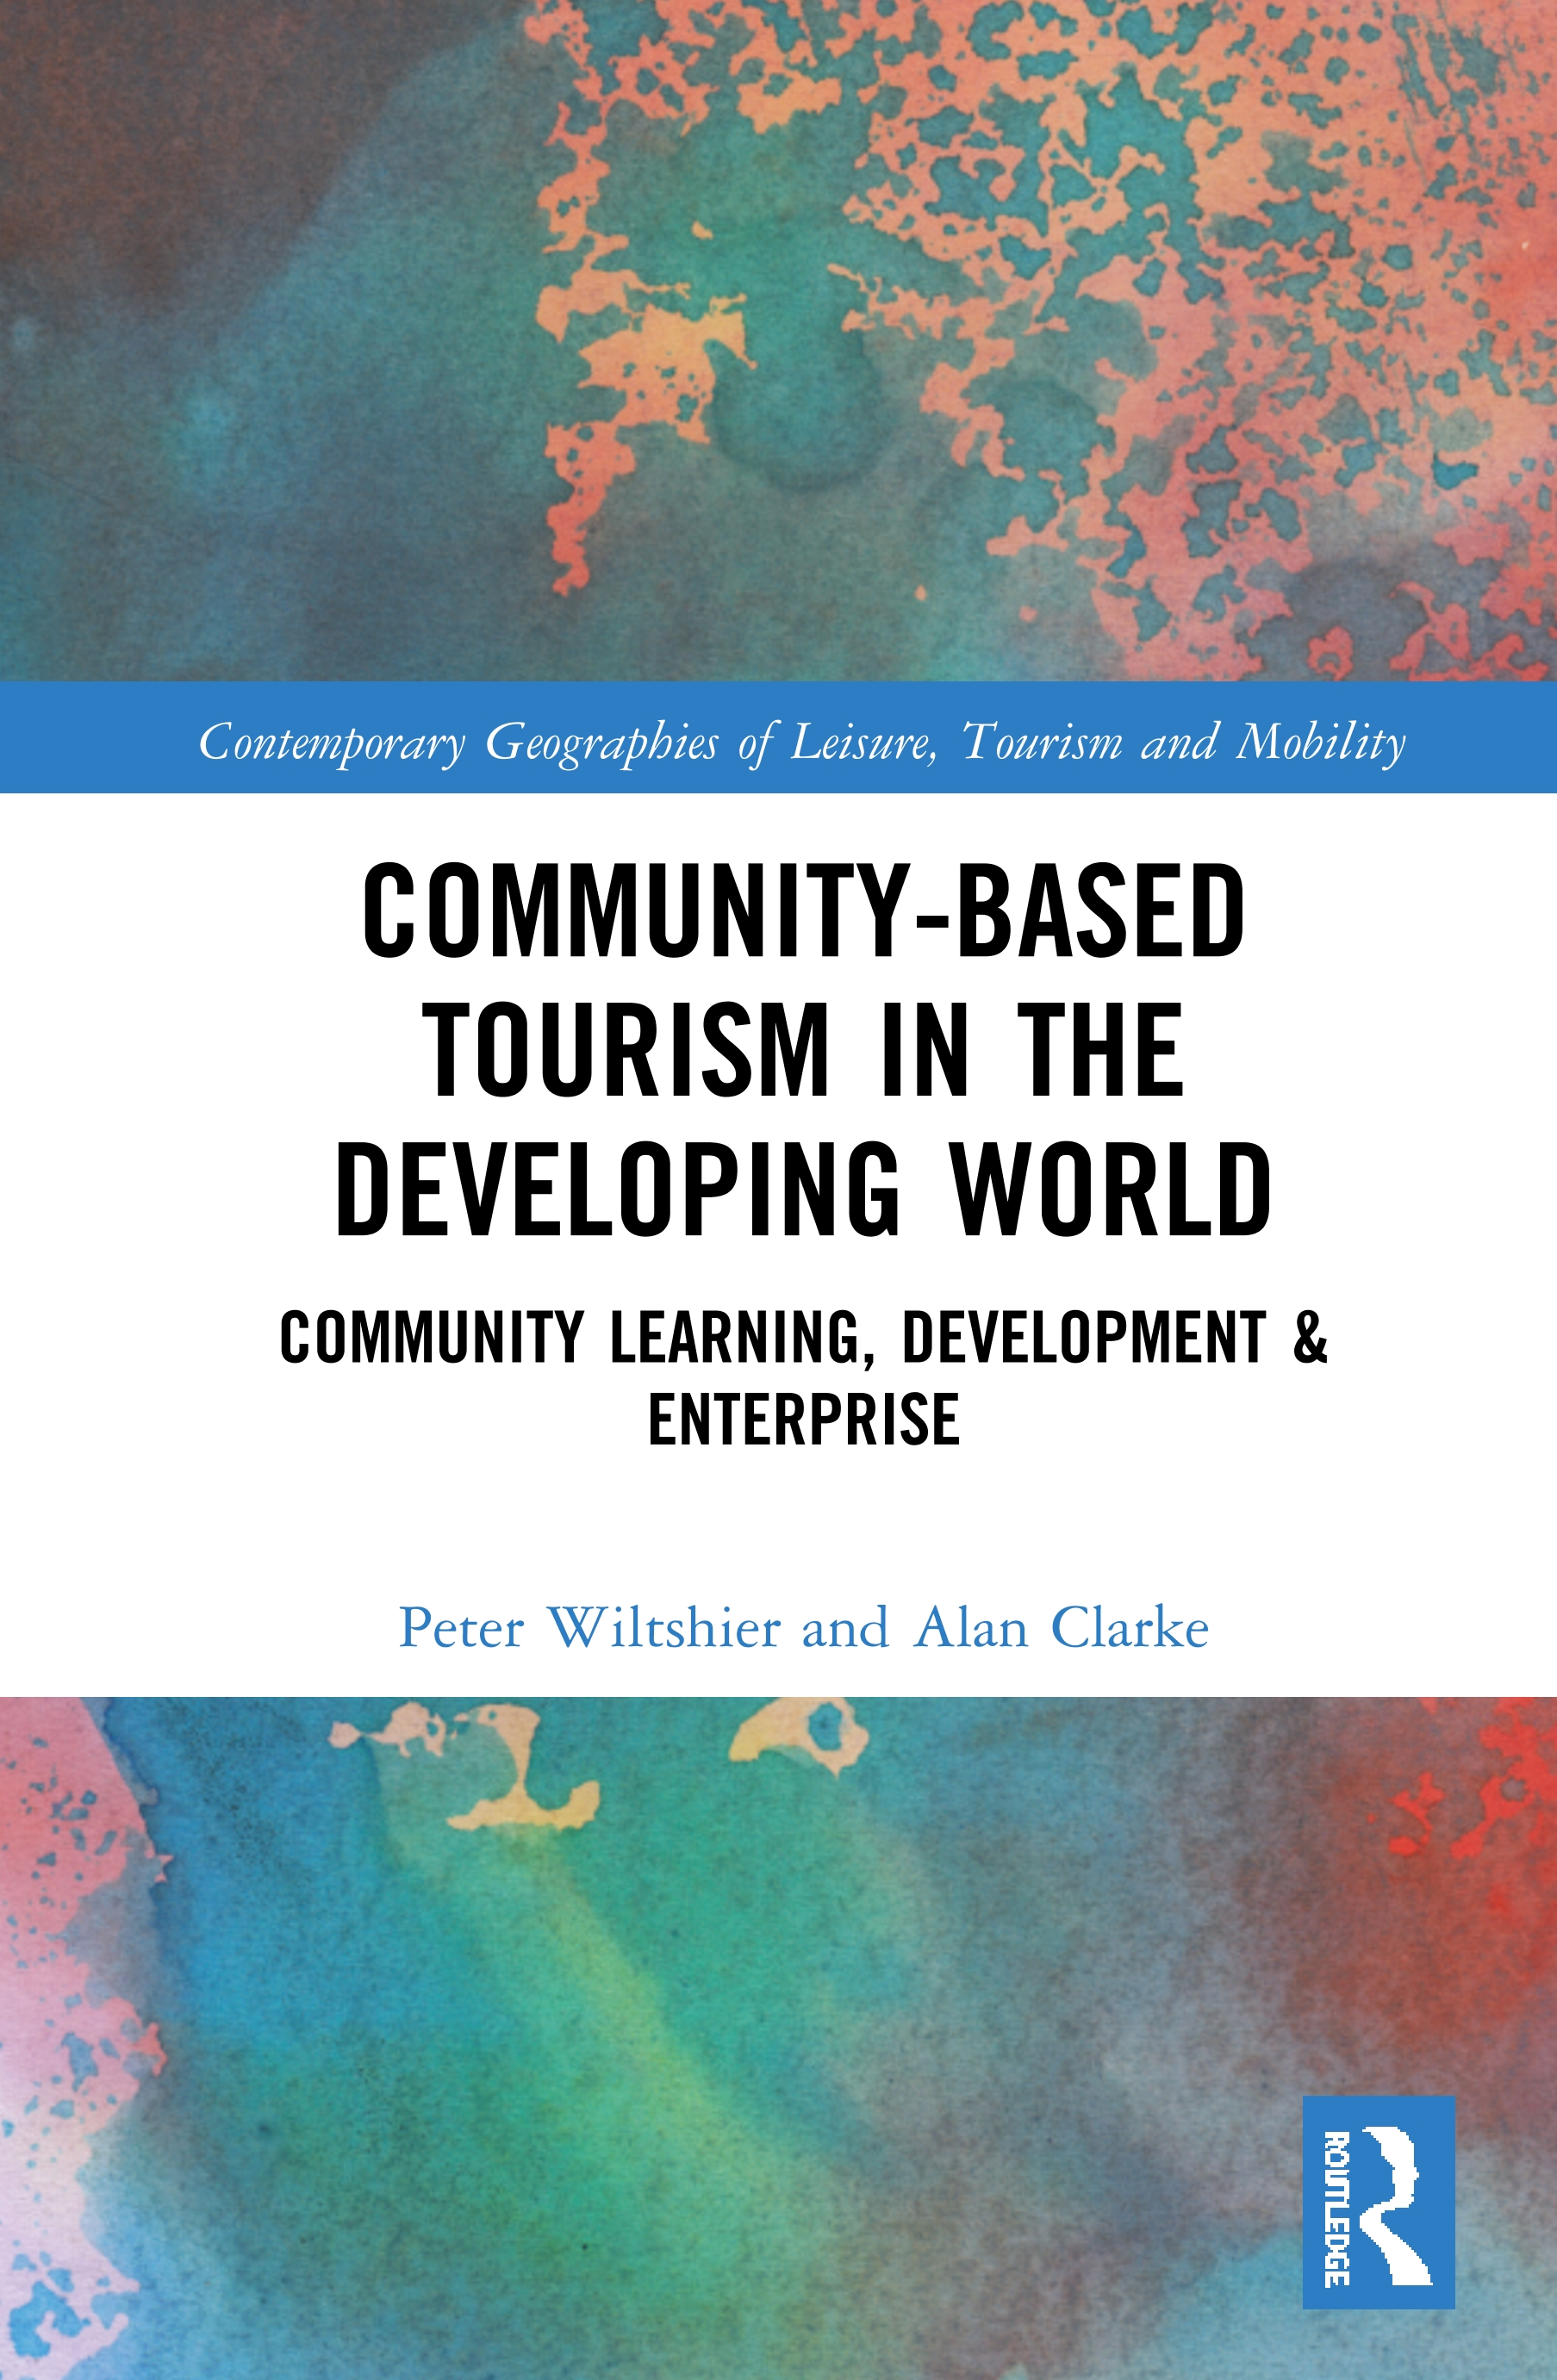 Community-Based Tourism in the Developing World: Community Learning, Development & Enterprise book cover